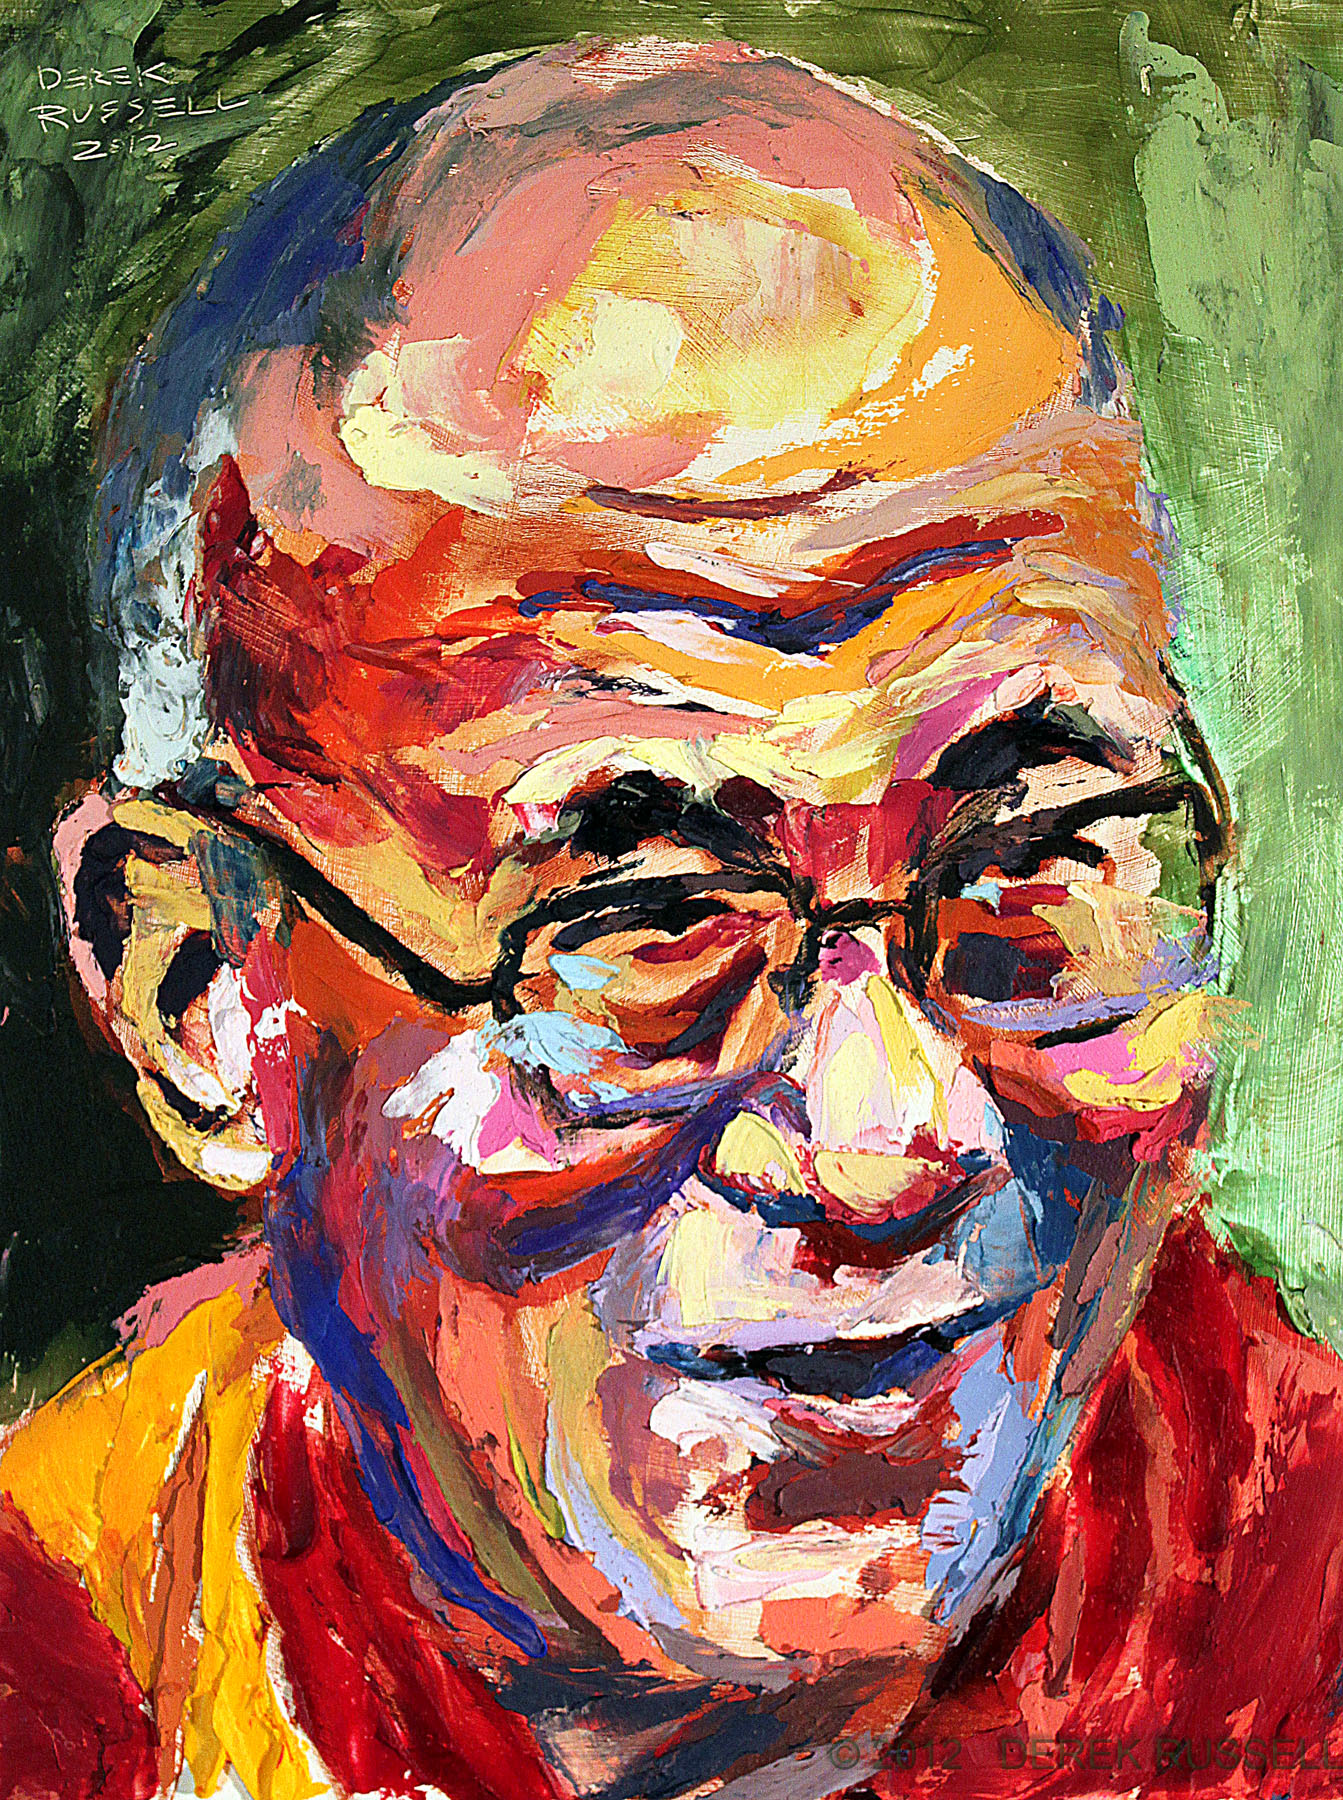 Dalai Lama Original Oil and Acrylic Portrait Painting by Artist Derek Russell